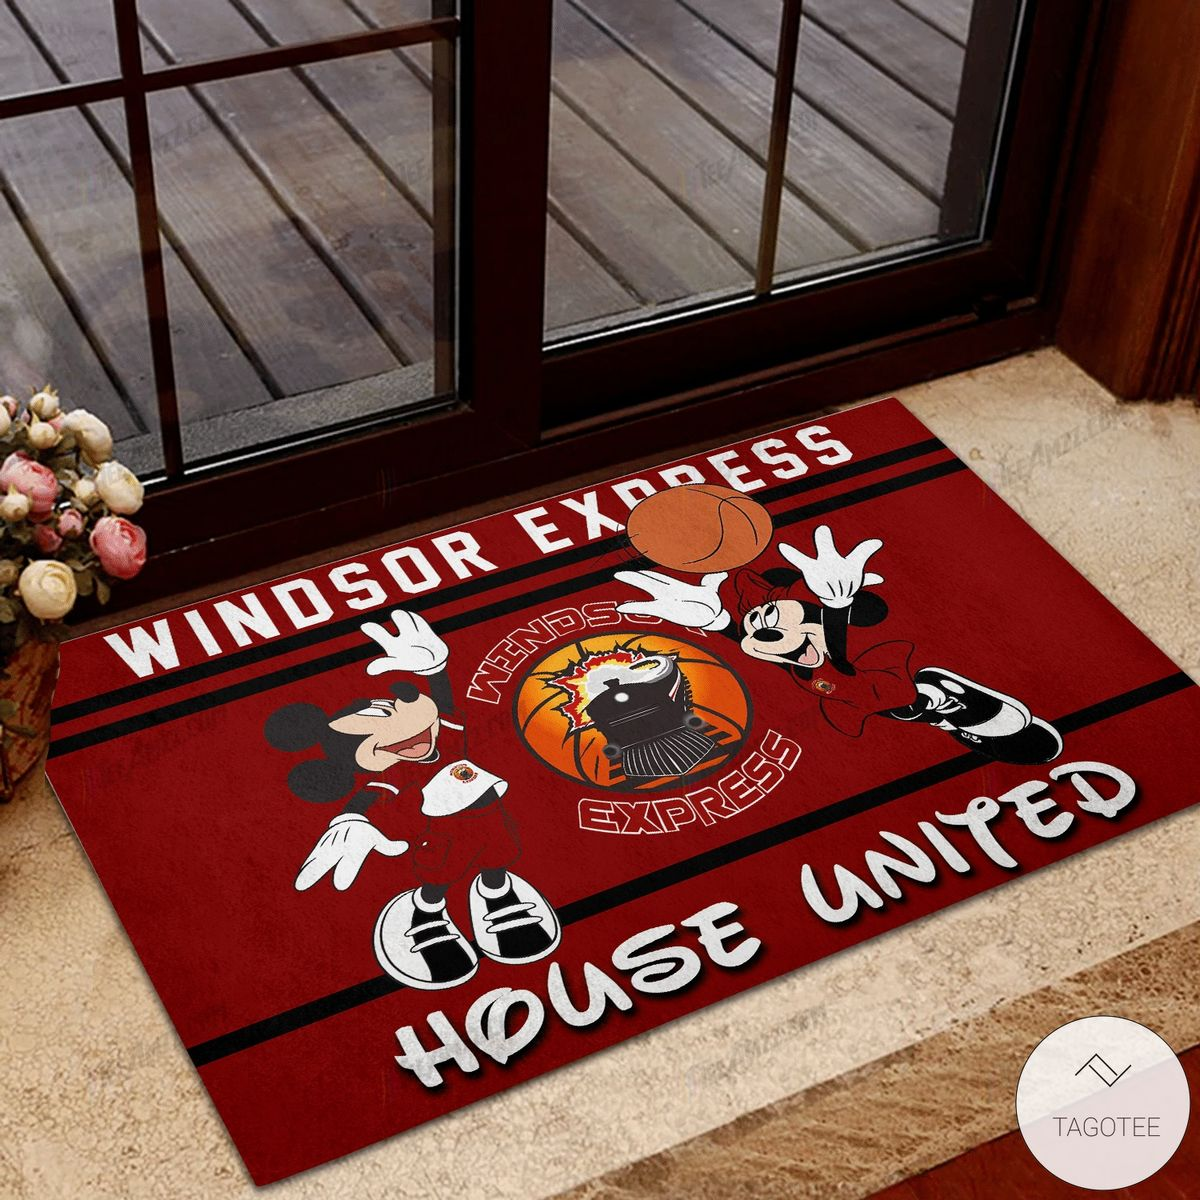 Windsor Express House United Mickey Mouse And Minnie Mouse Doormat